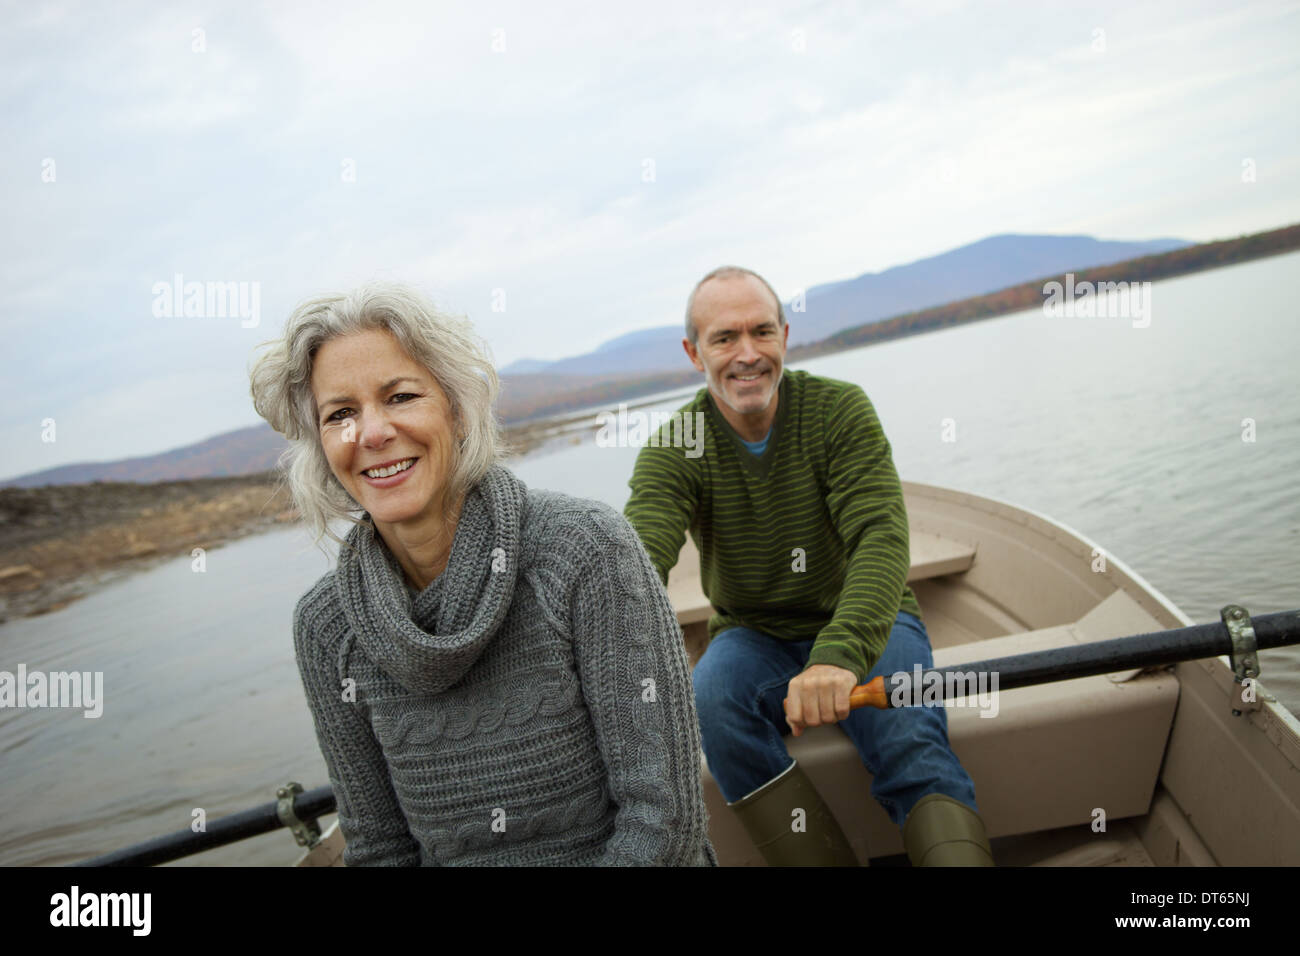 A couple, man and woman sitting in a rowing boat on the water on an autumn day. - Stock Image